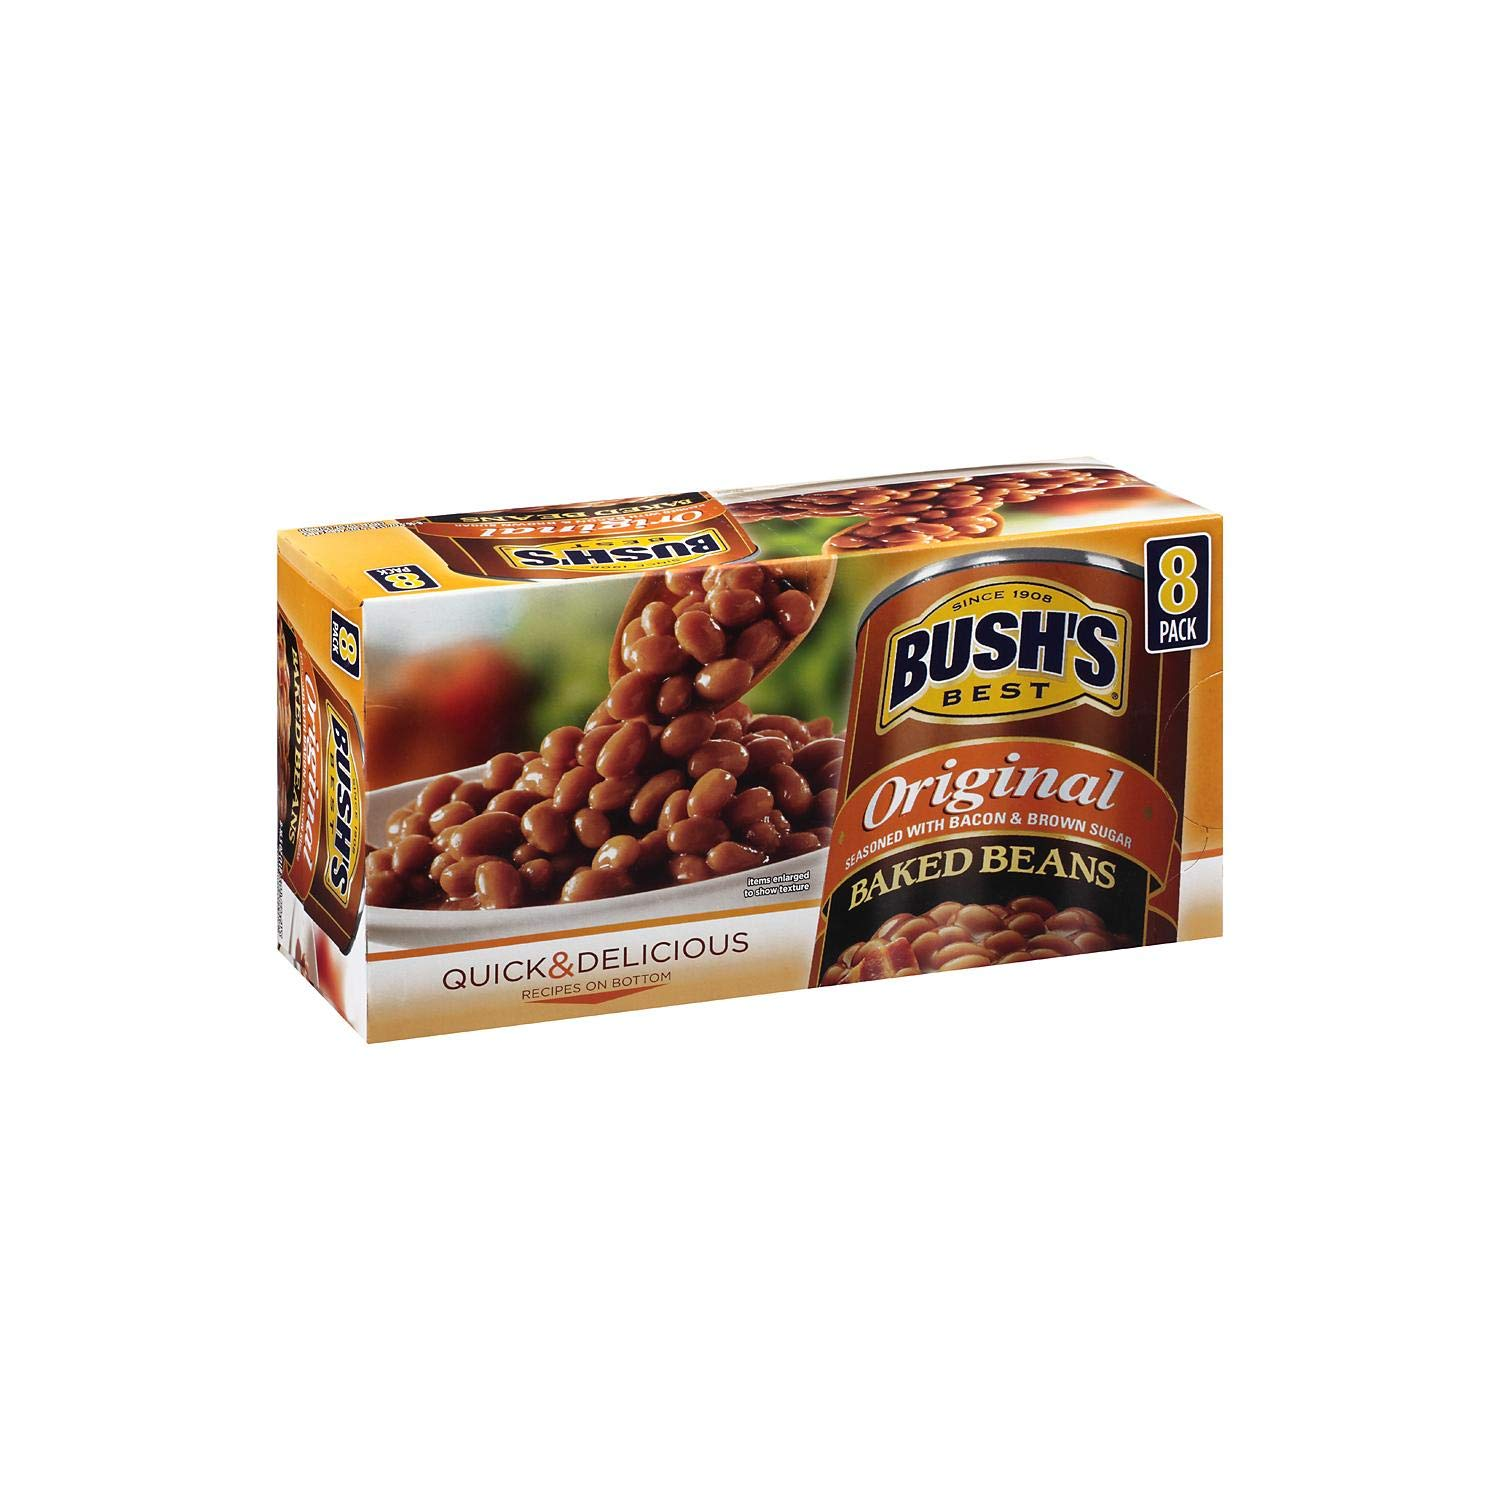 Bush's Best Original Baked Beans | Seasoned With Bacon & Brown Sugar Quick Delicious Gluten Free Baked Canned Beans - 8…